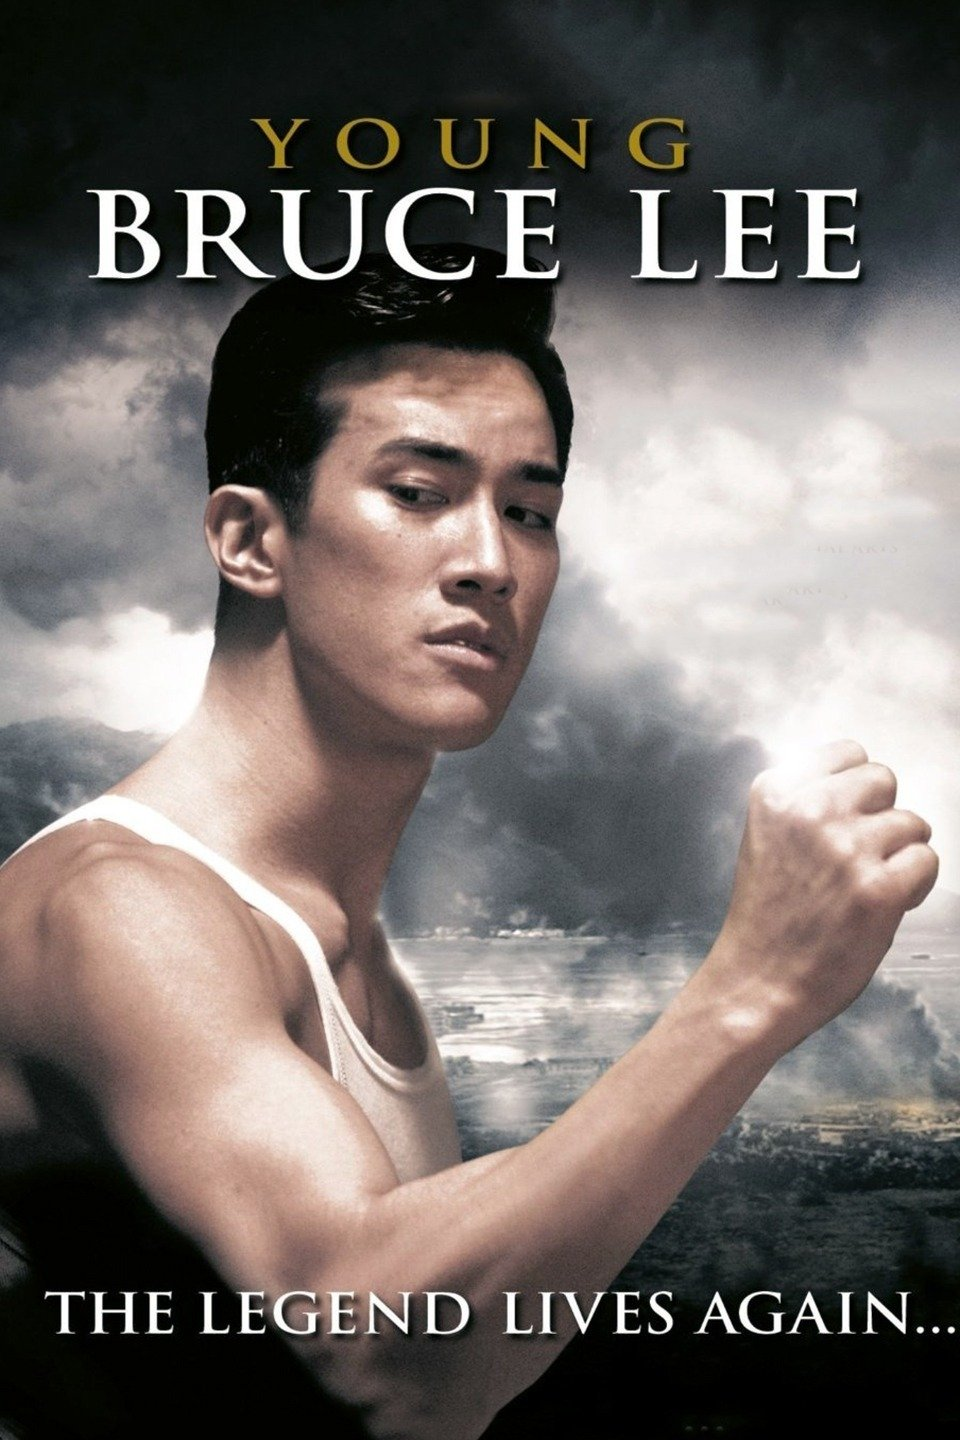 Bruce Lee, My Brother-Li xiao long